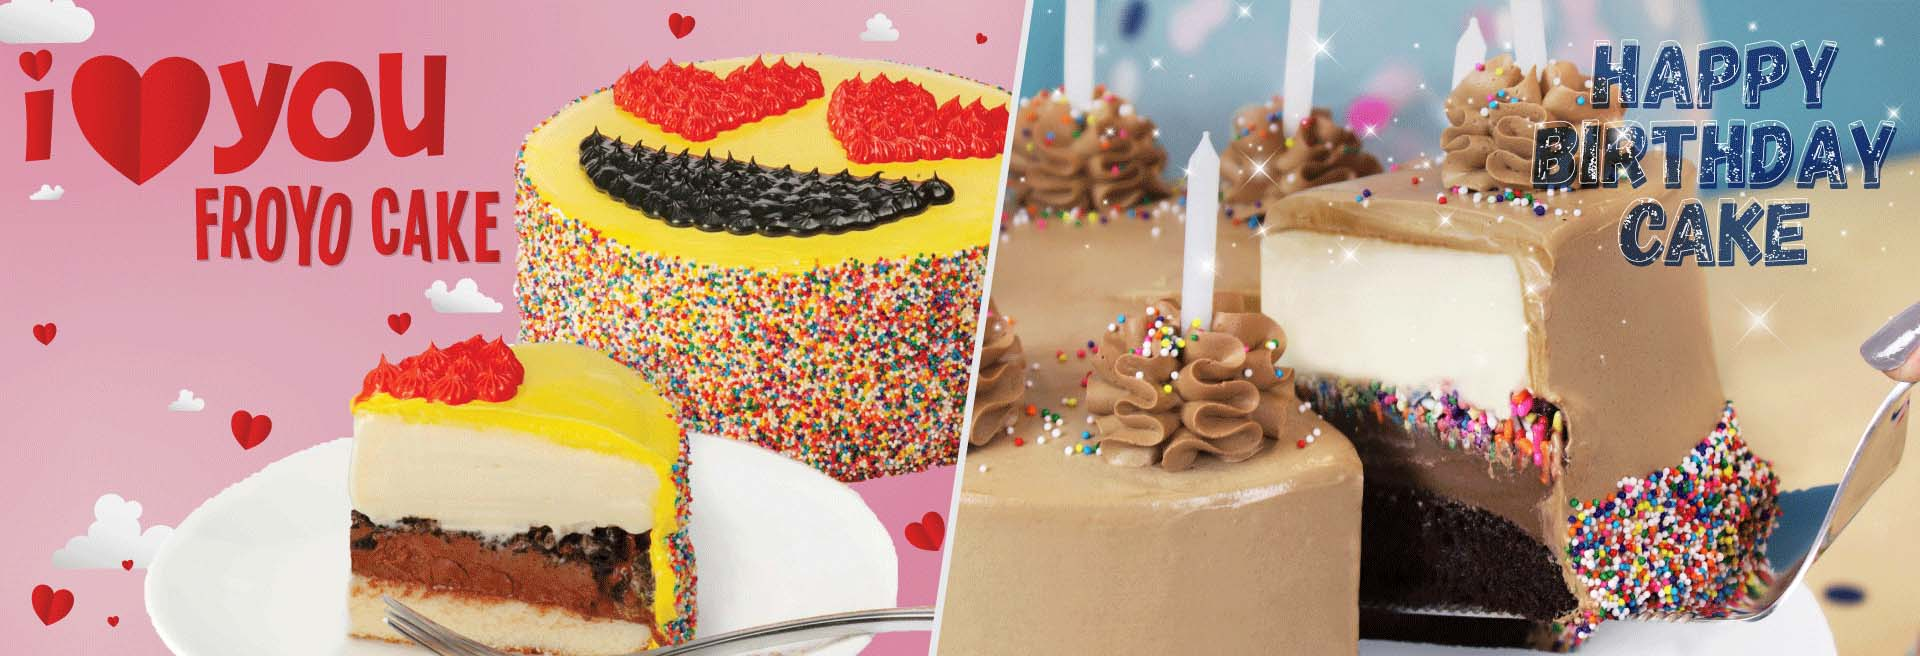 Celebrate the month of Love with our I <3 You Froyo Cake and the new Happy Birthday Cake